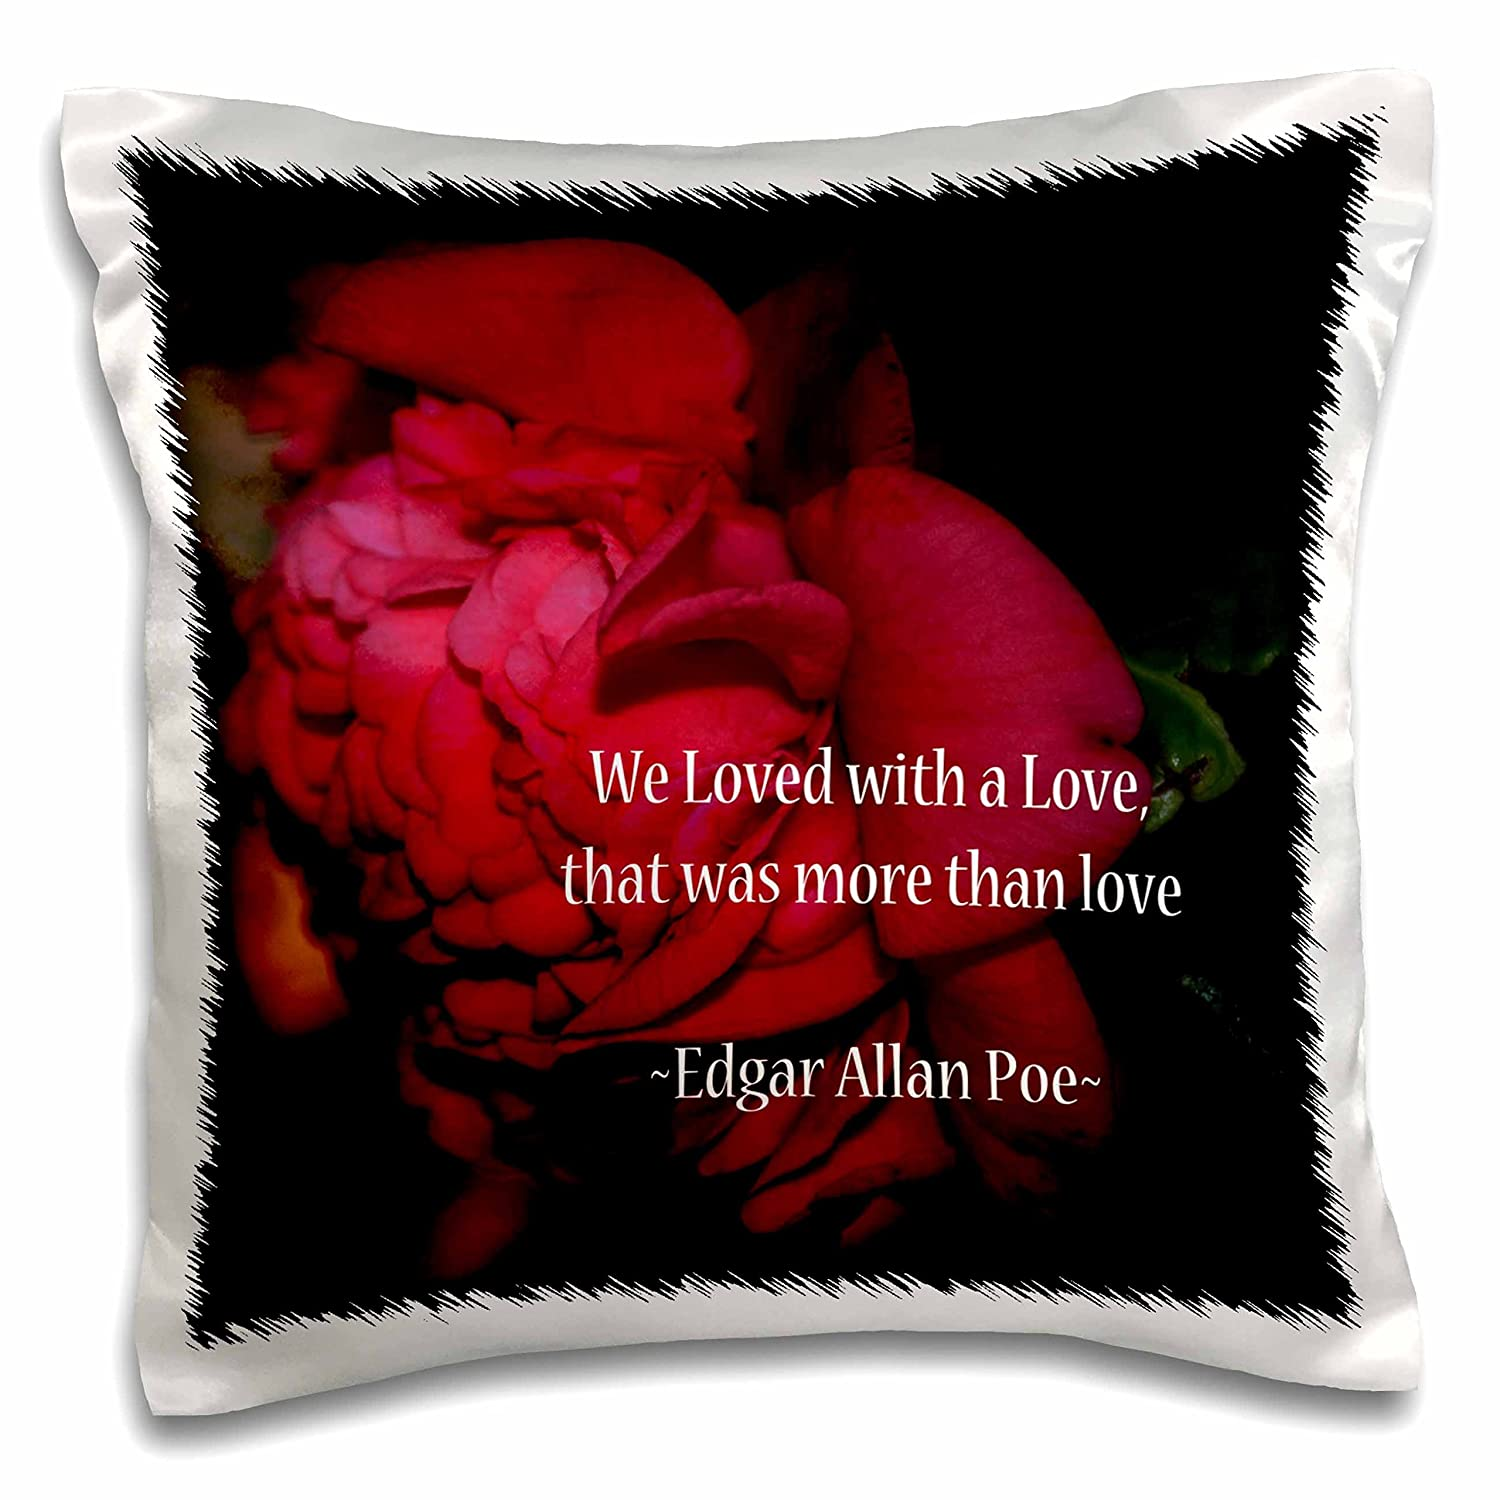 3dRose WhiteOaks Photography and Artwork - Inspirational - More Than Love is an Inspirational Quote by Edgar Allan Poe - 16x16 inch Pillow Case (pc_265330_1)